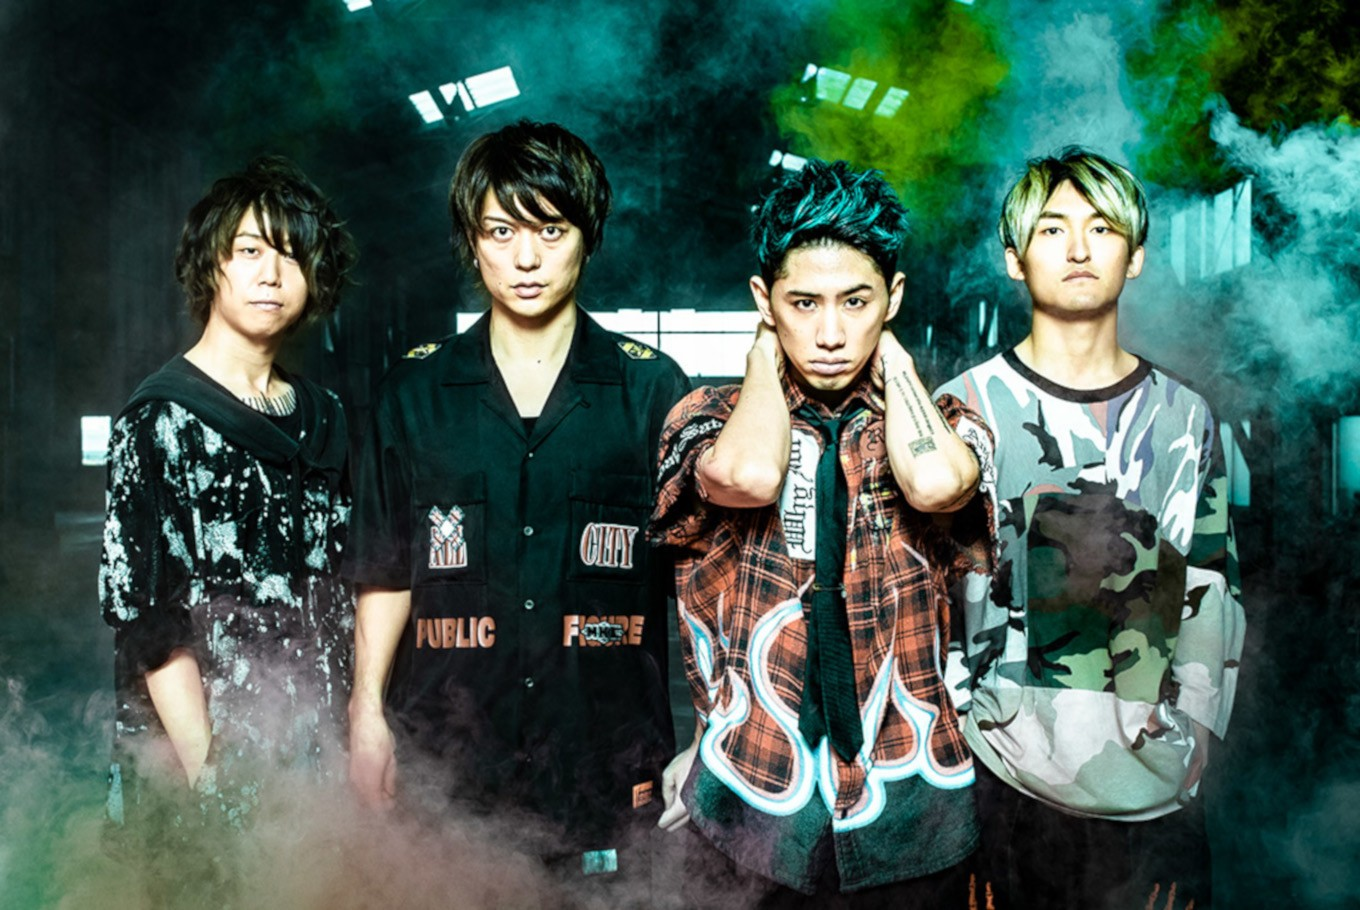 ONE OK ROCK's past concerts to stream on YouTube